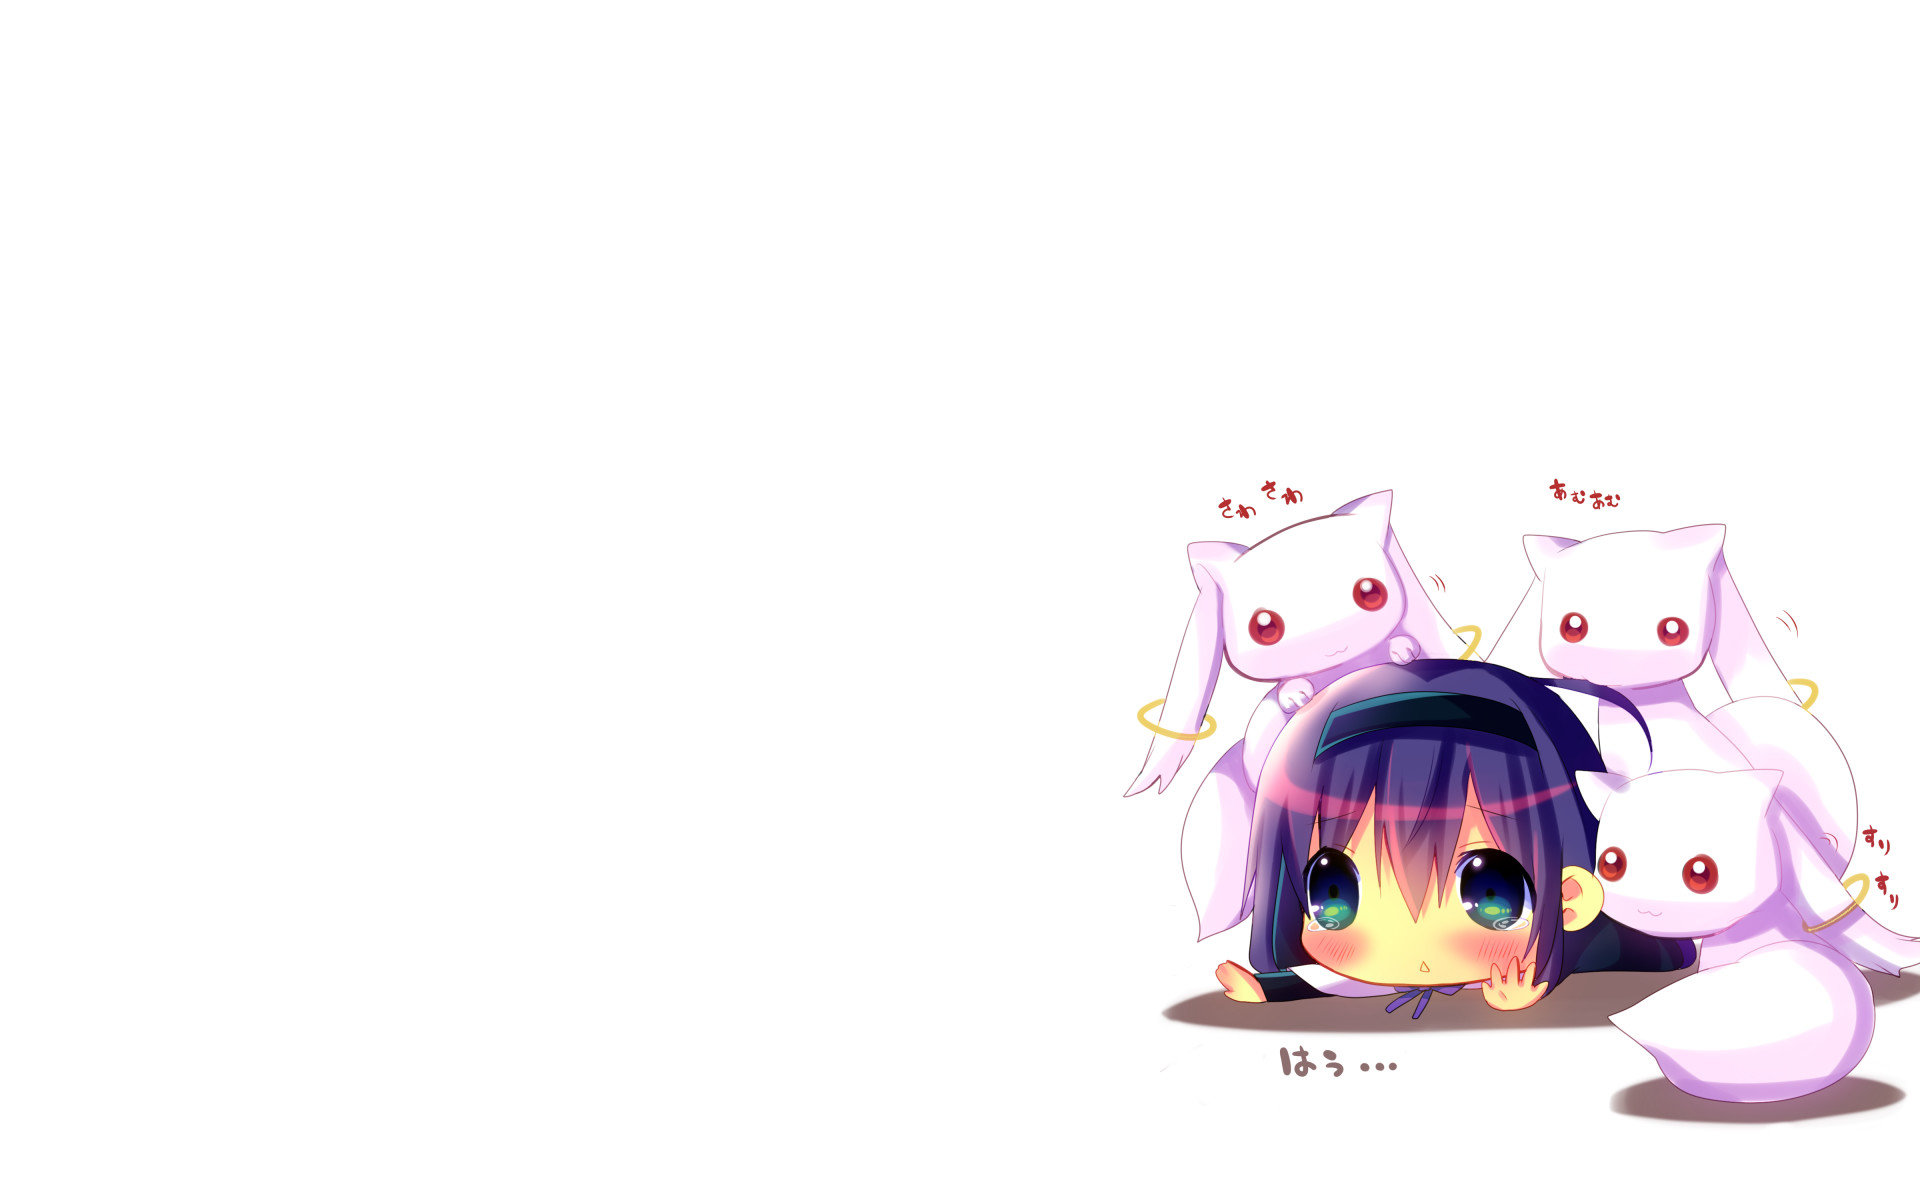 Awesome Puella Magi Madoka Magica free wallpaper ID:32260 for hd 1920x1200 desktop